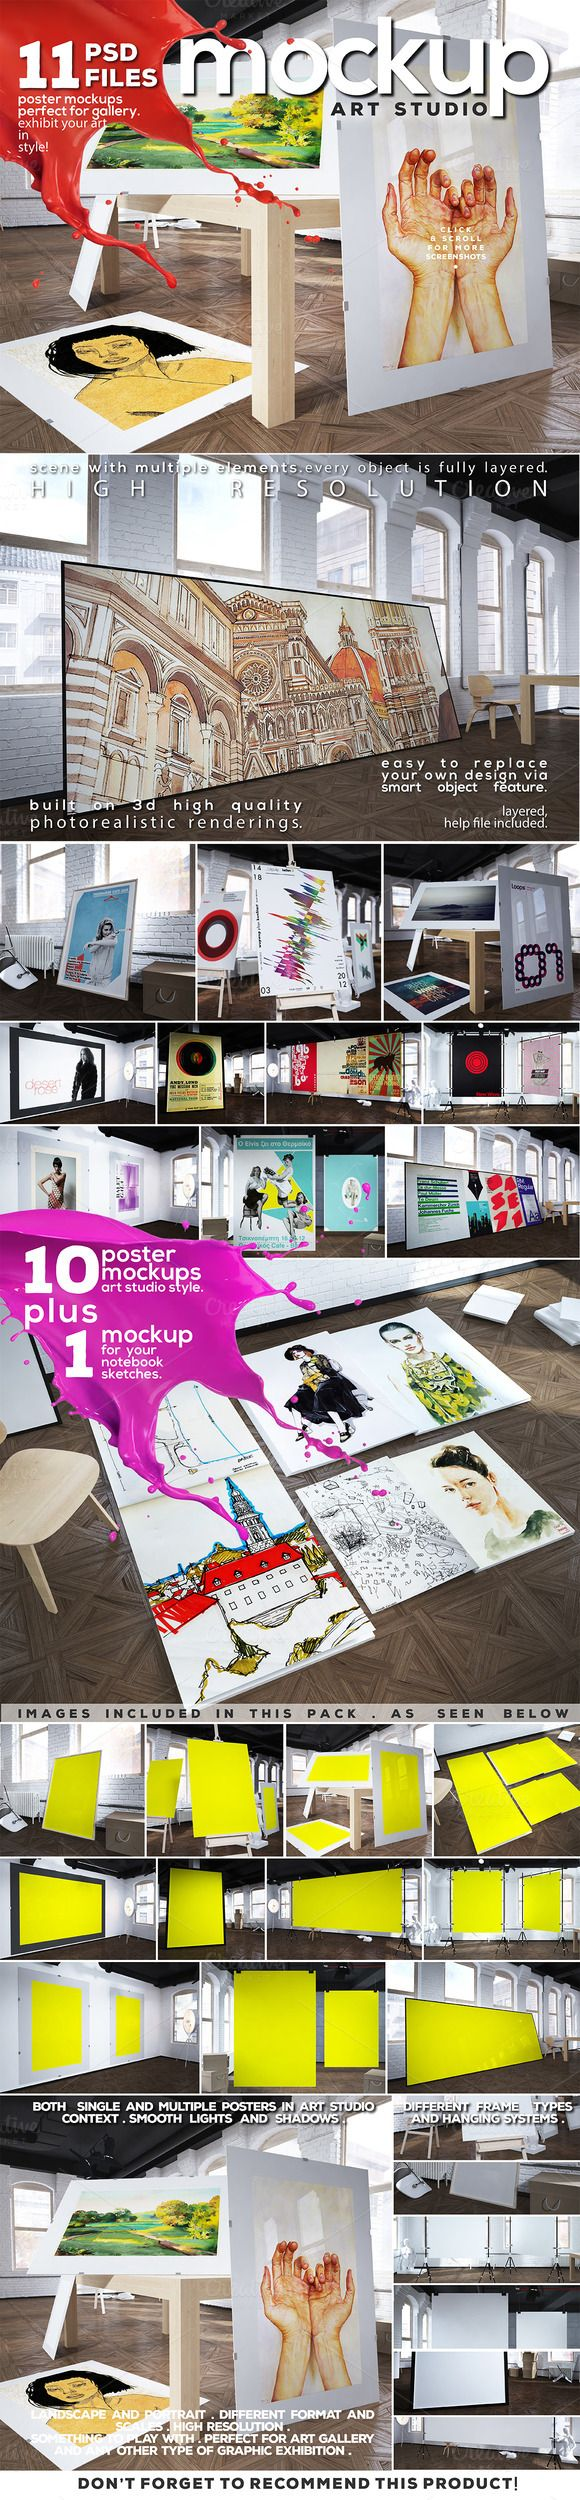 Art Studio-Poster Mock-up vol.8 by DESIGNbook on Creative Market